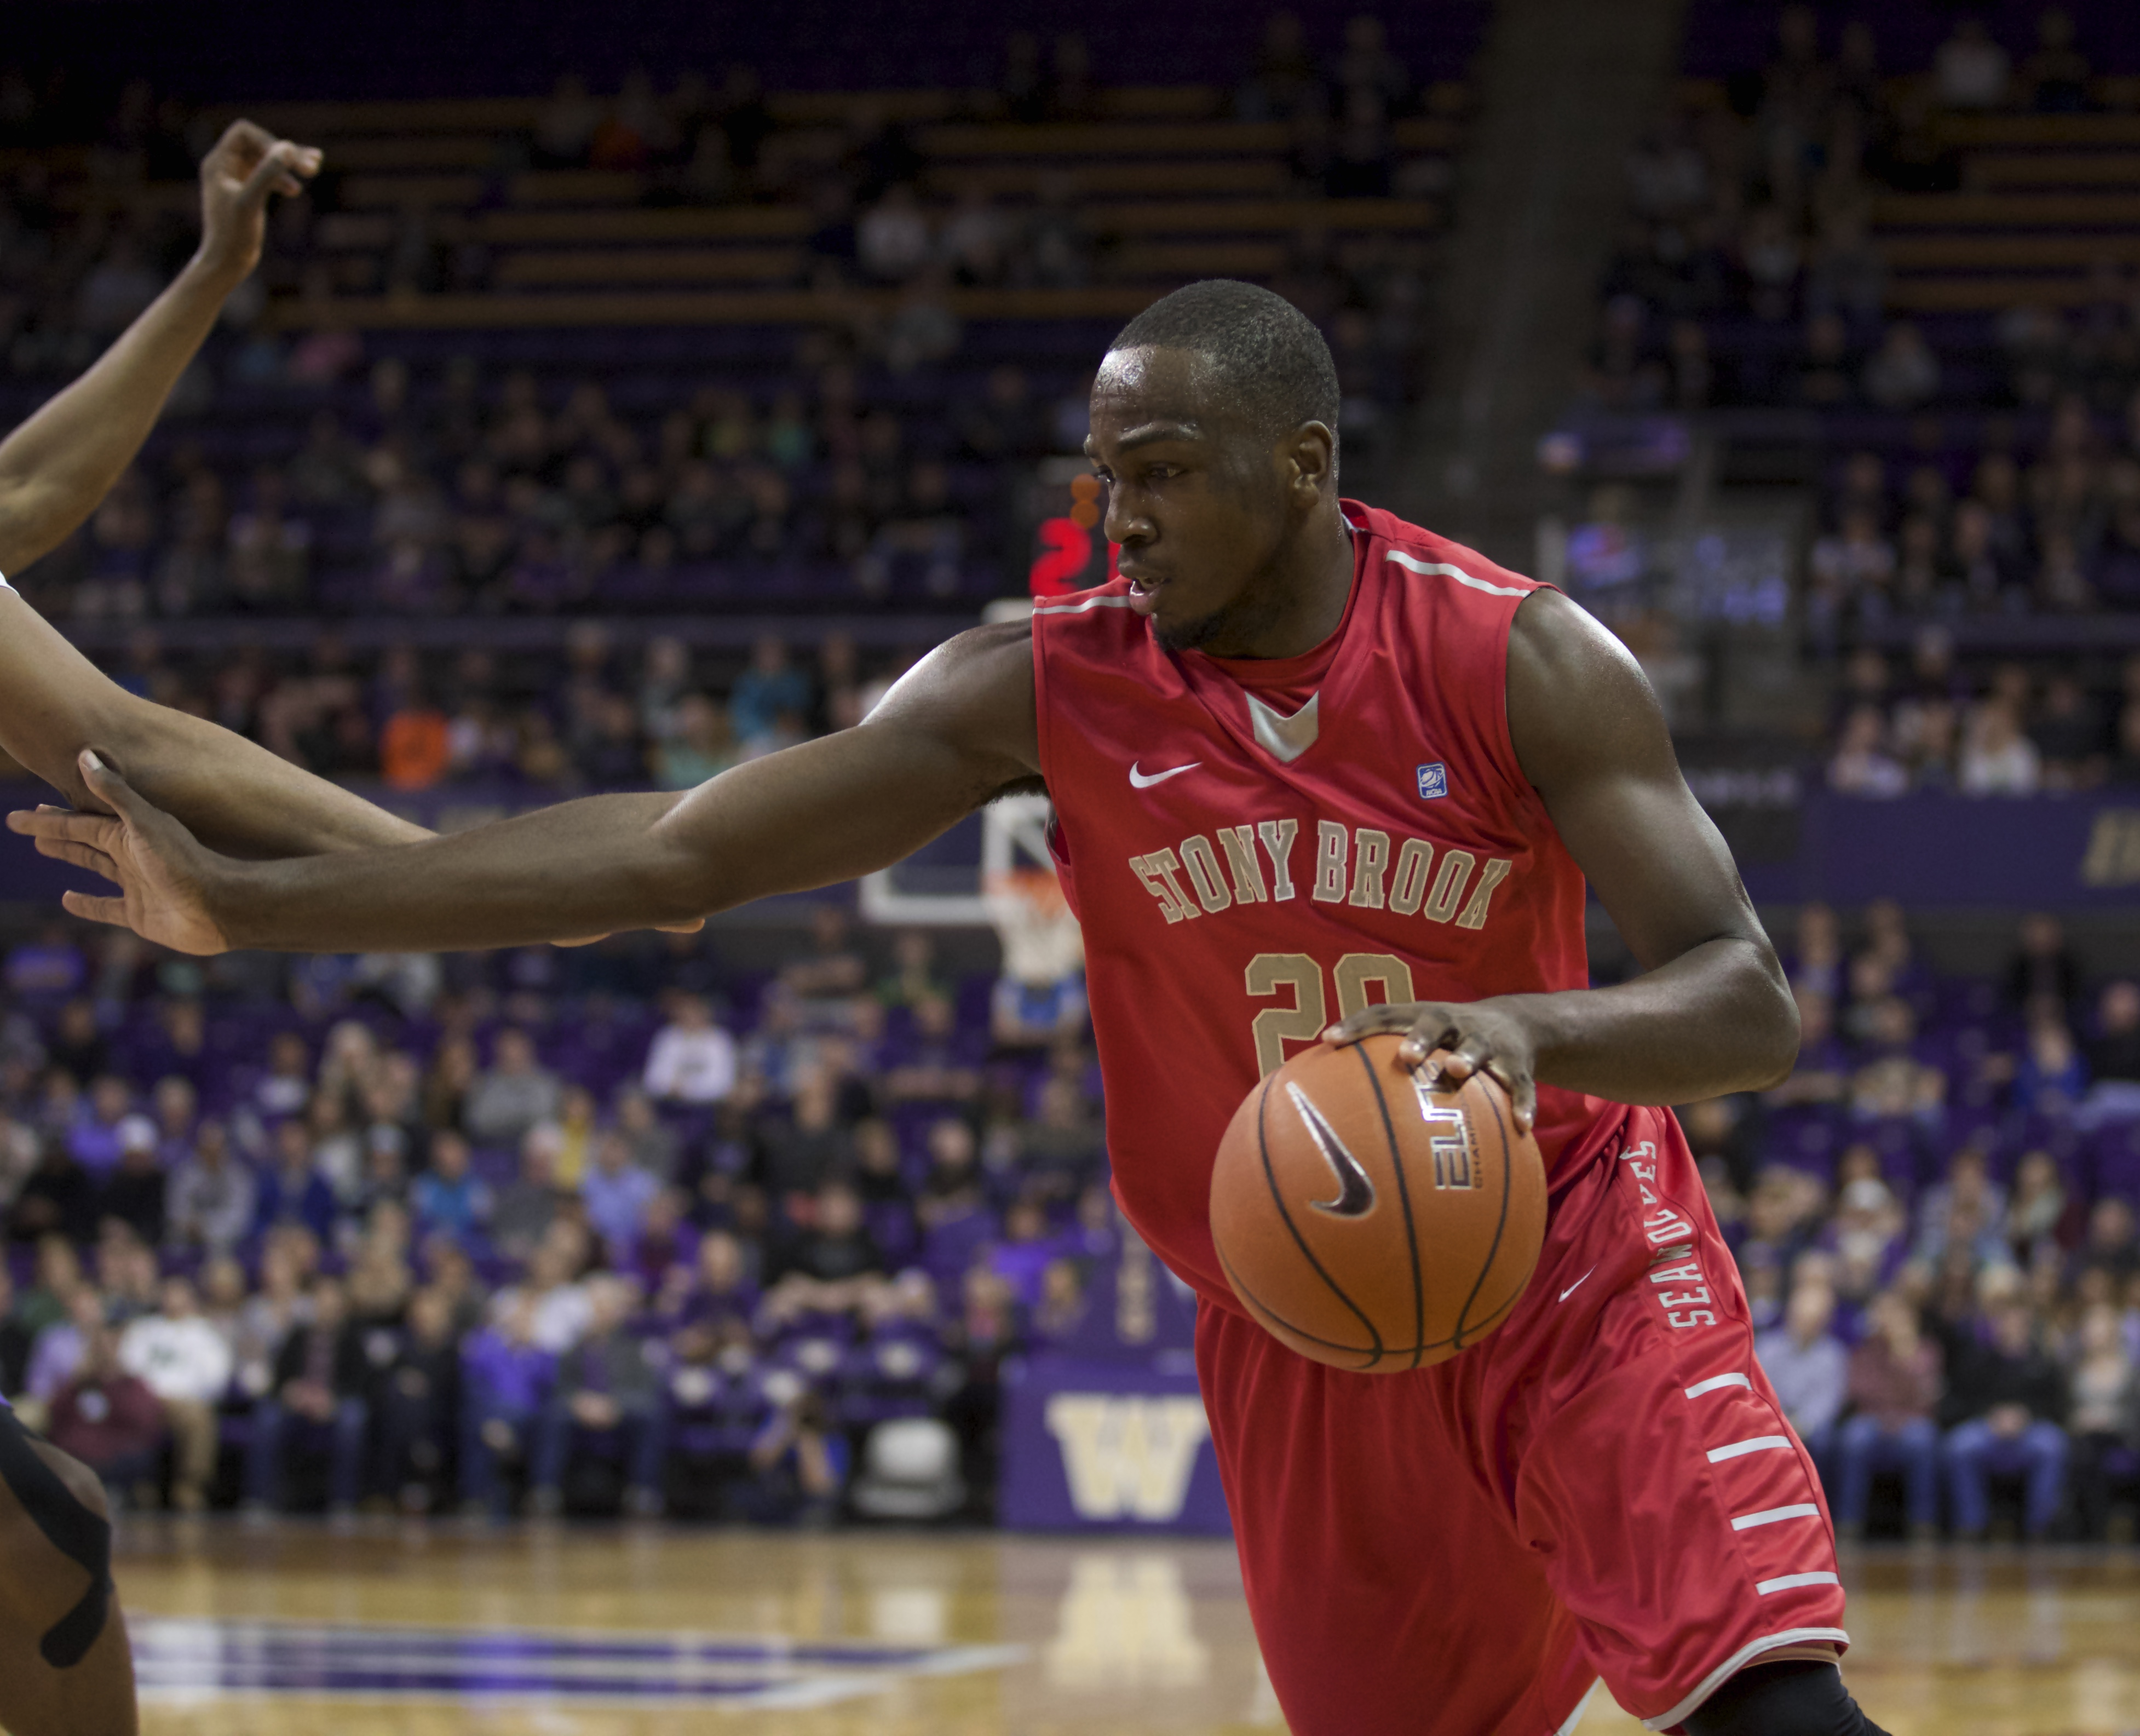 Stony Brook Jameel Warney dribbles the ball during the first half of an NCAA college basketball game against Washington Sunday, Dec. 28, 2014, in Seattle. Stony Brook won 62-57. (AP Photo/Stephen Brashear)